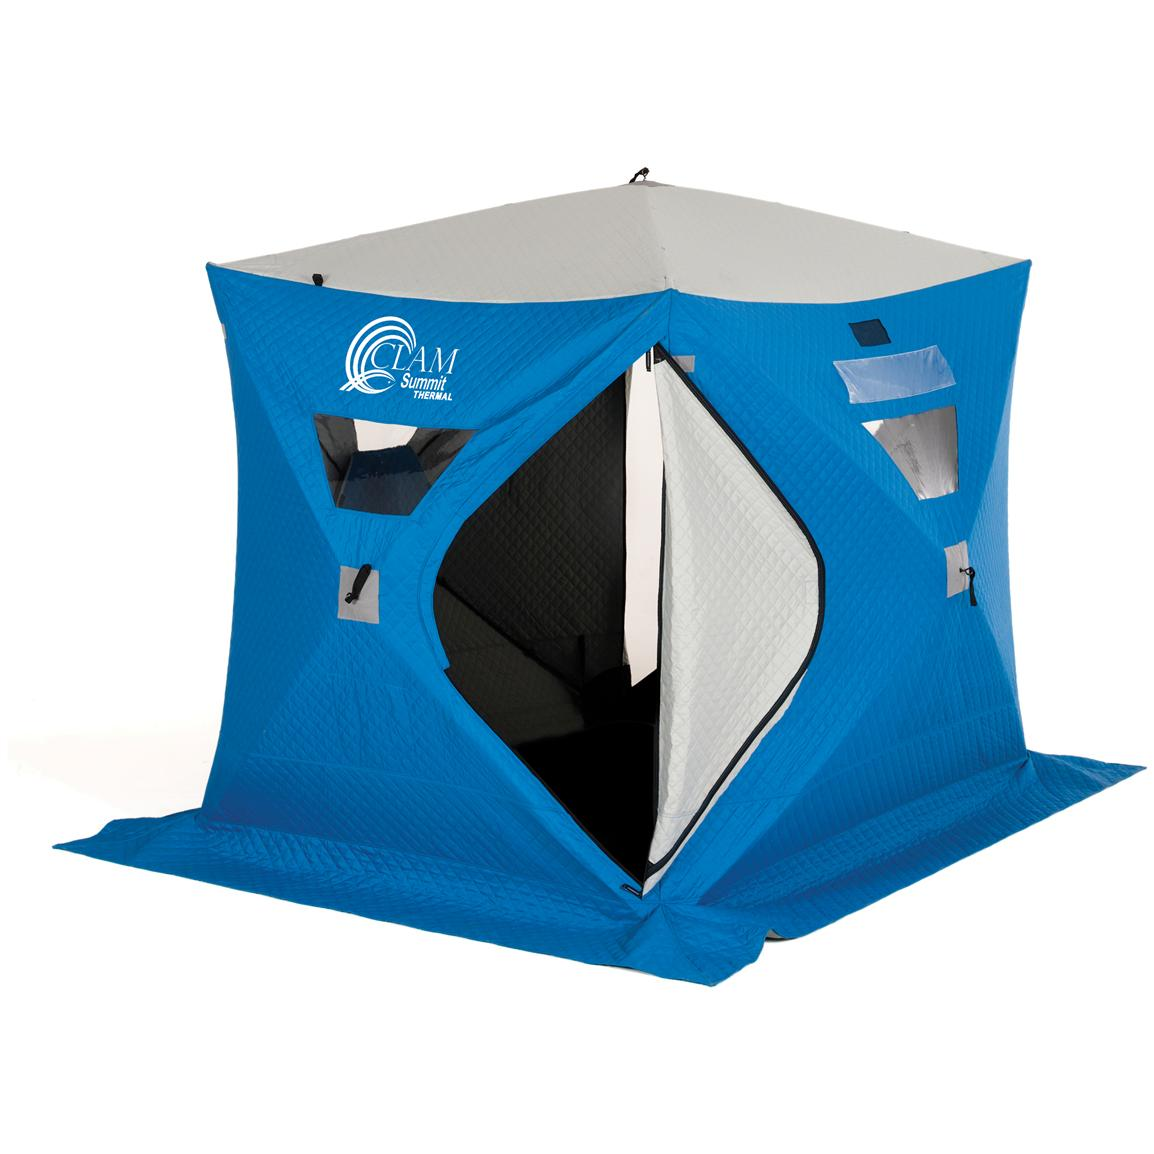 Clam™ Summit Thermal FLR Portable Pop-up Shelter